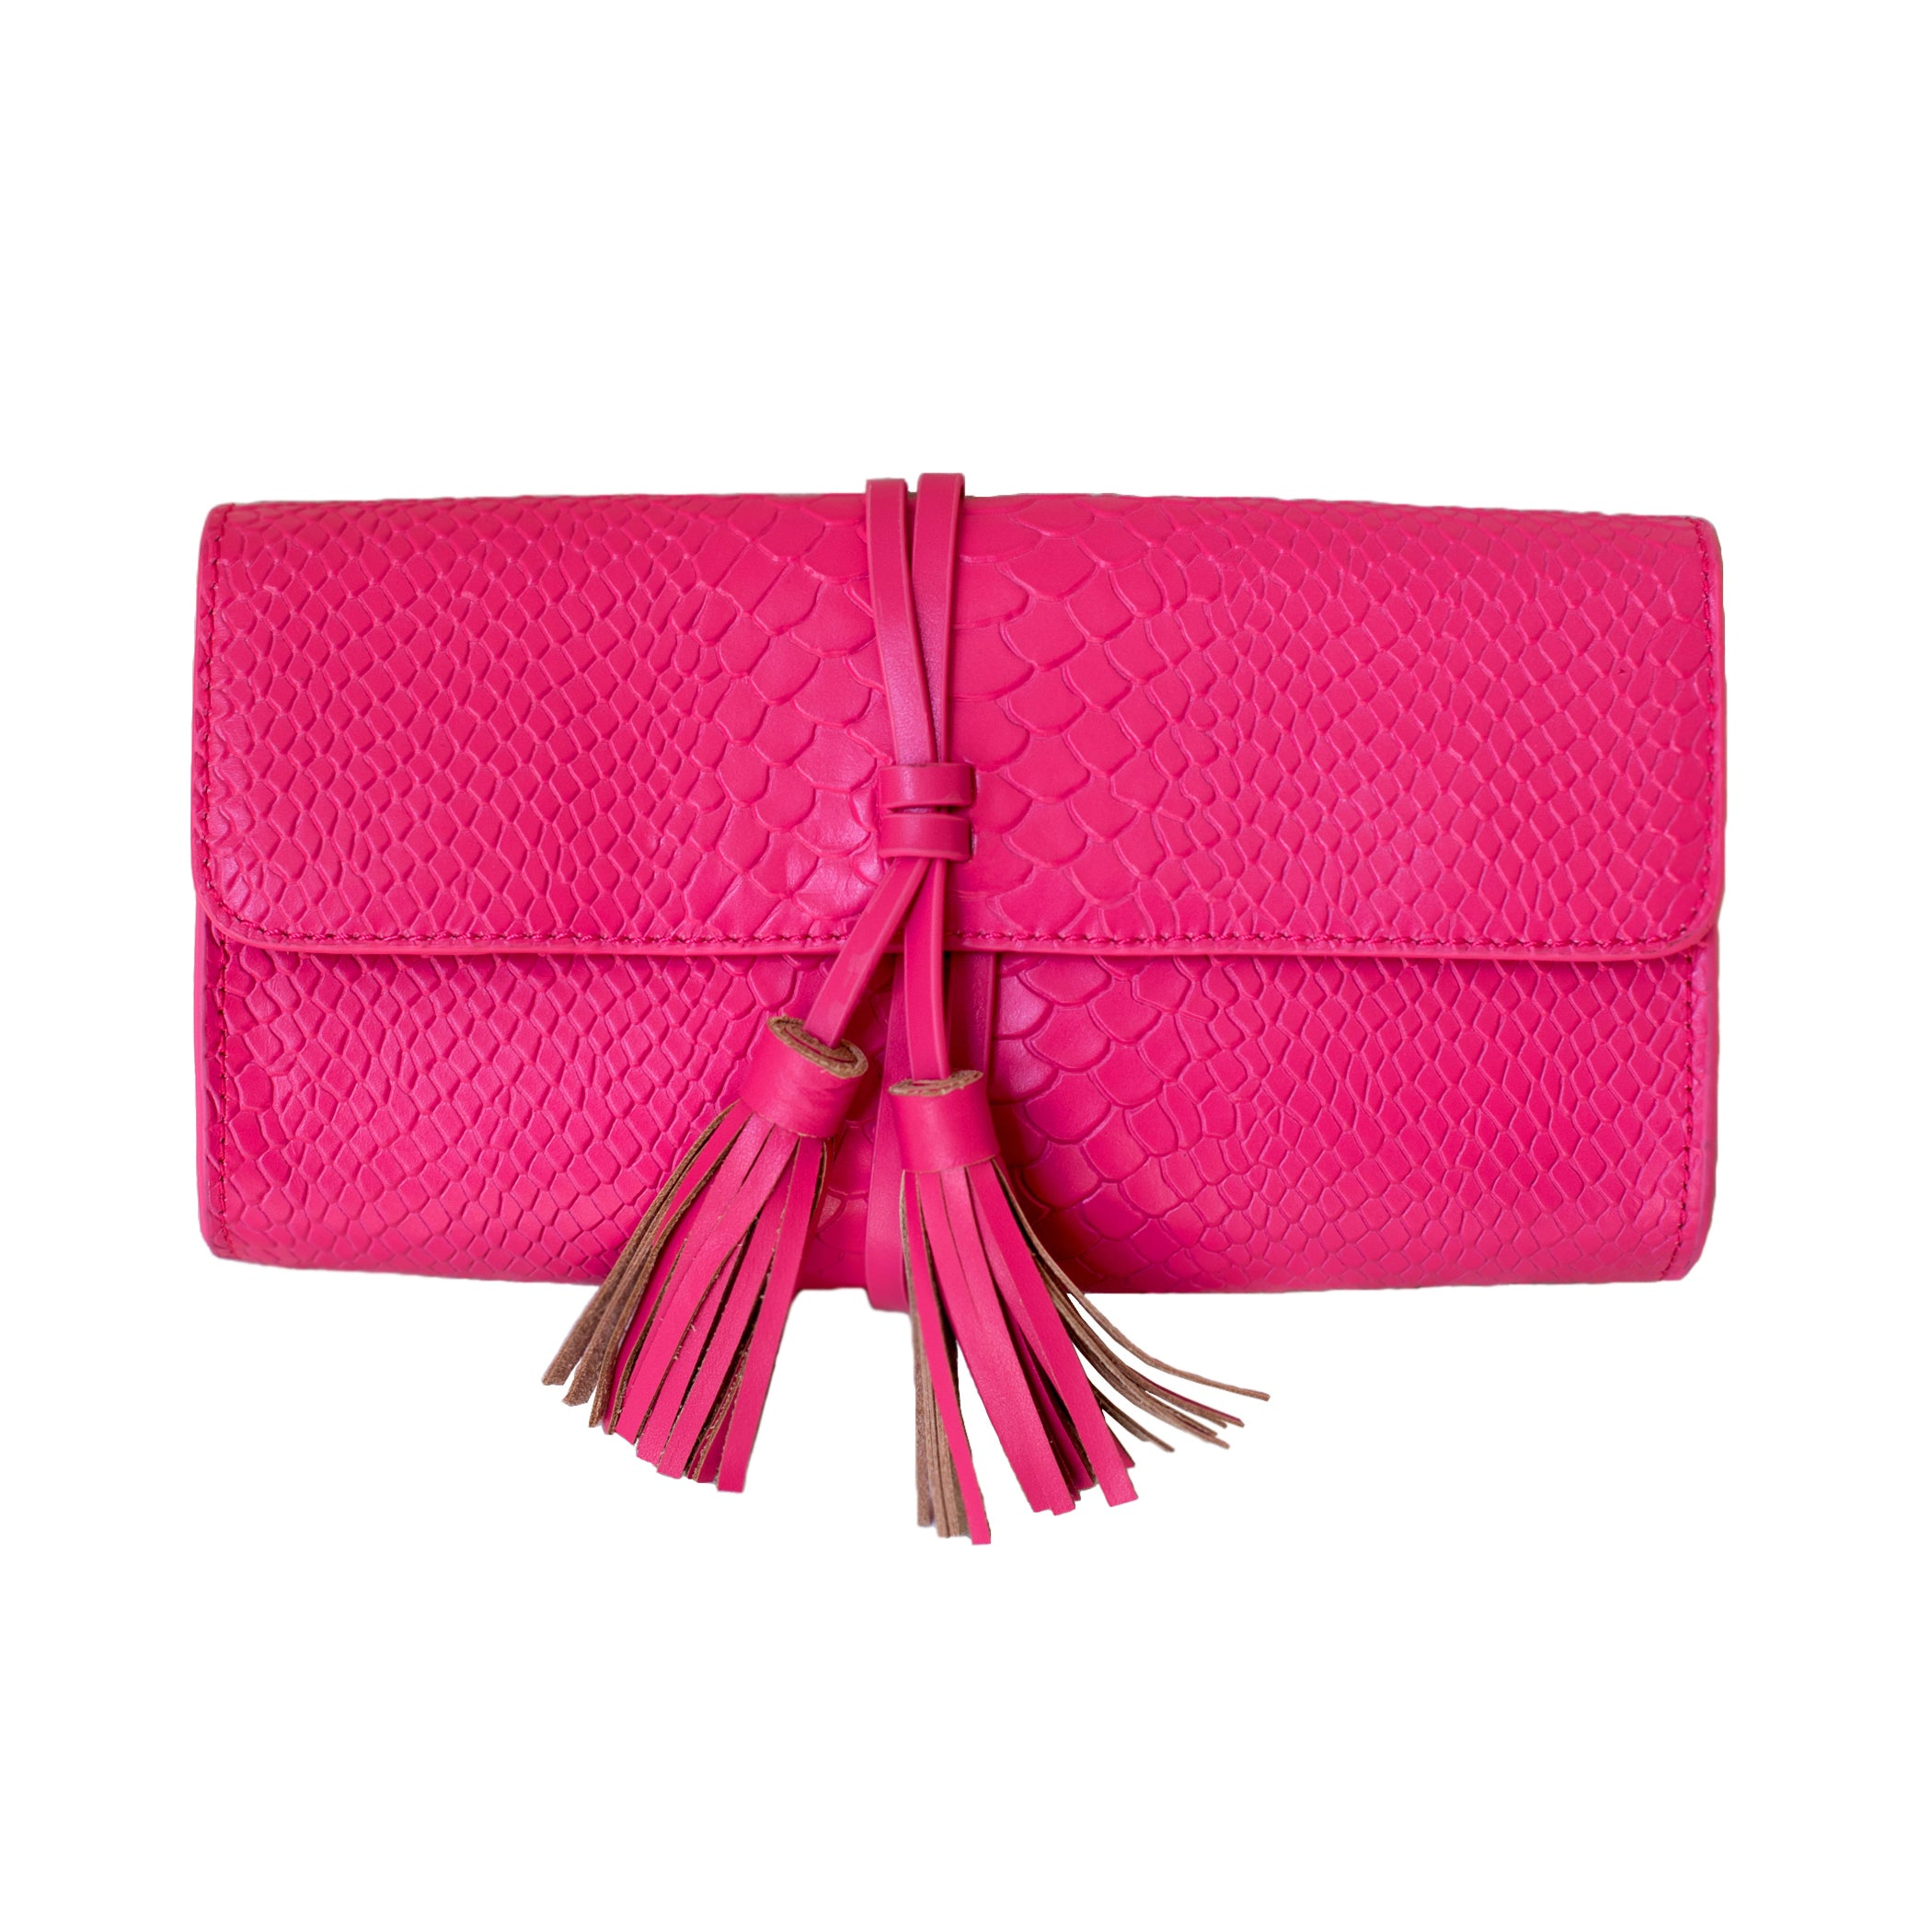 Pink Python Leather Tassel Clutch - Elizabeth Ackerman New York